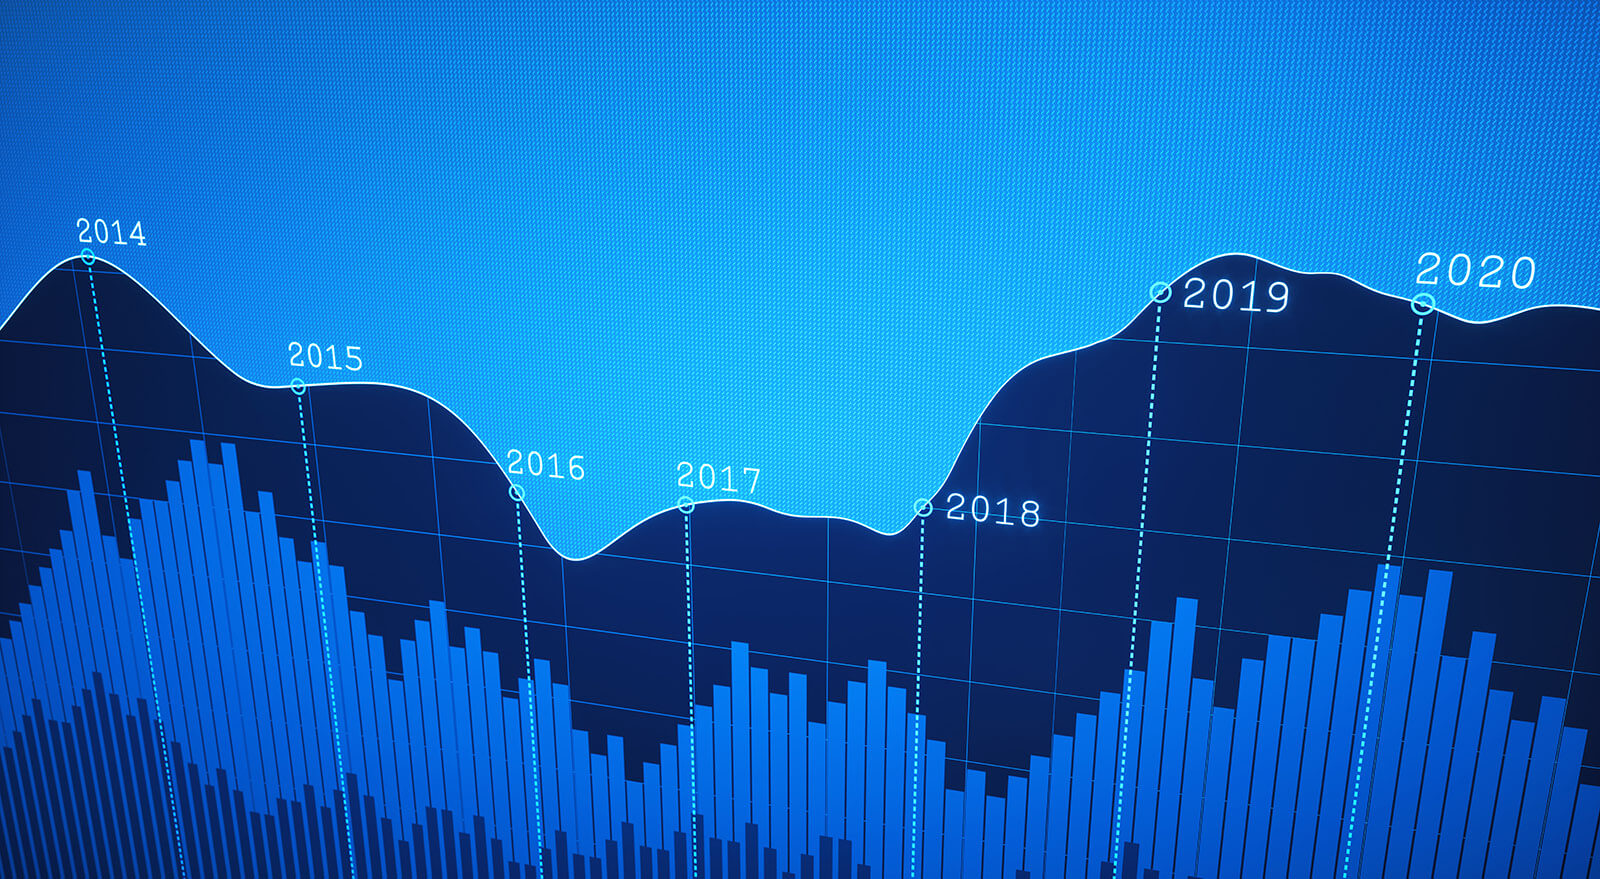 A simple financial report showing a graph line plotted on a dark blue pixelated background.